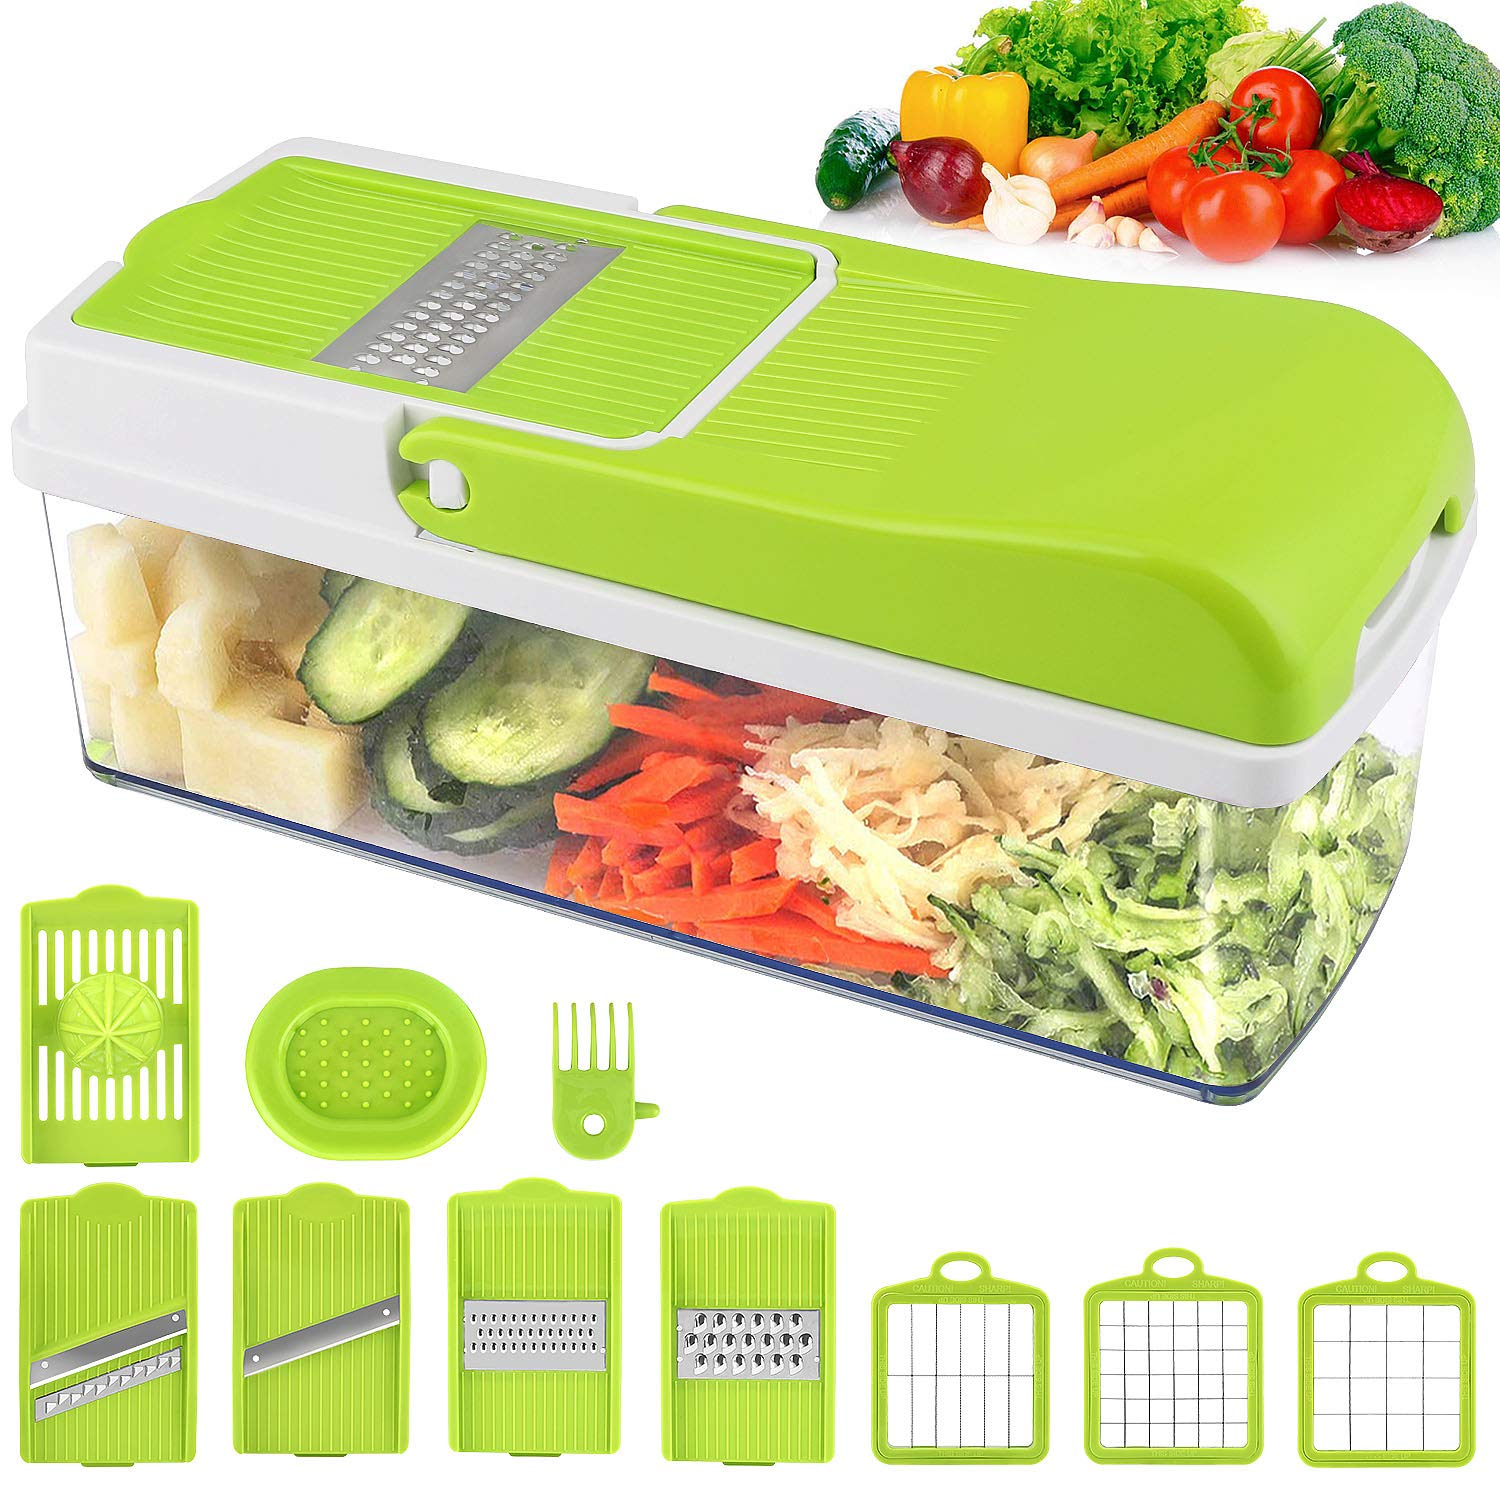 Vegetable Chopper Slicer, Food Chopper MOICO Onion Dicer Veggie Slicer Cutter With Multi-Functional Interchangeable Blades Cheese Grater For Garlic Carrot Potato Tomato Fruit Salad by MOICO